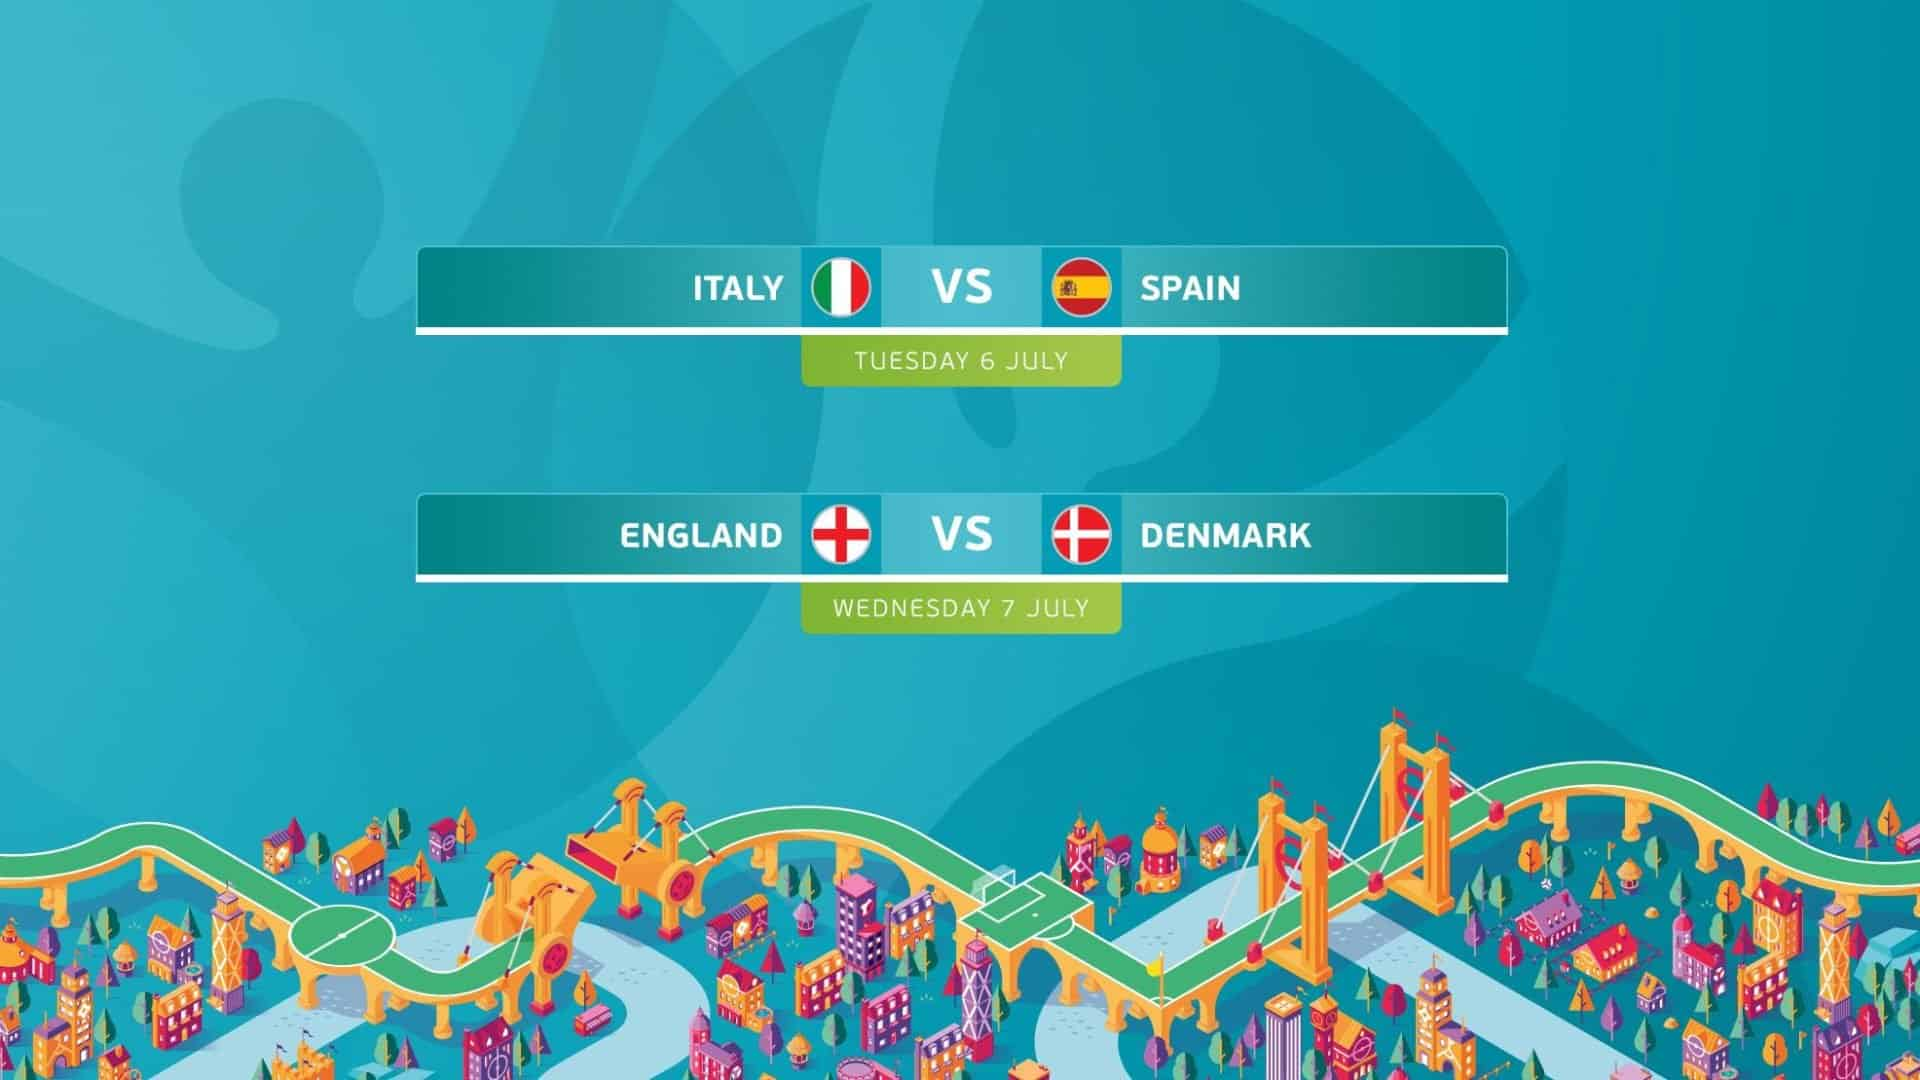 Semi-finals clashes set for EURO 2020